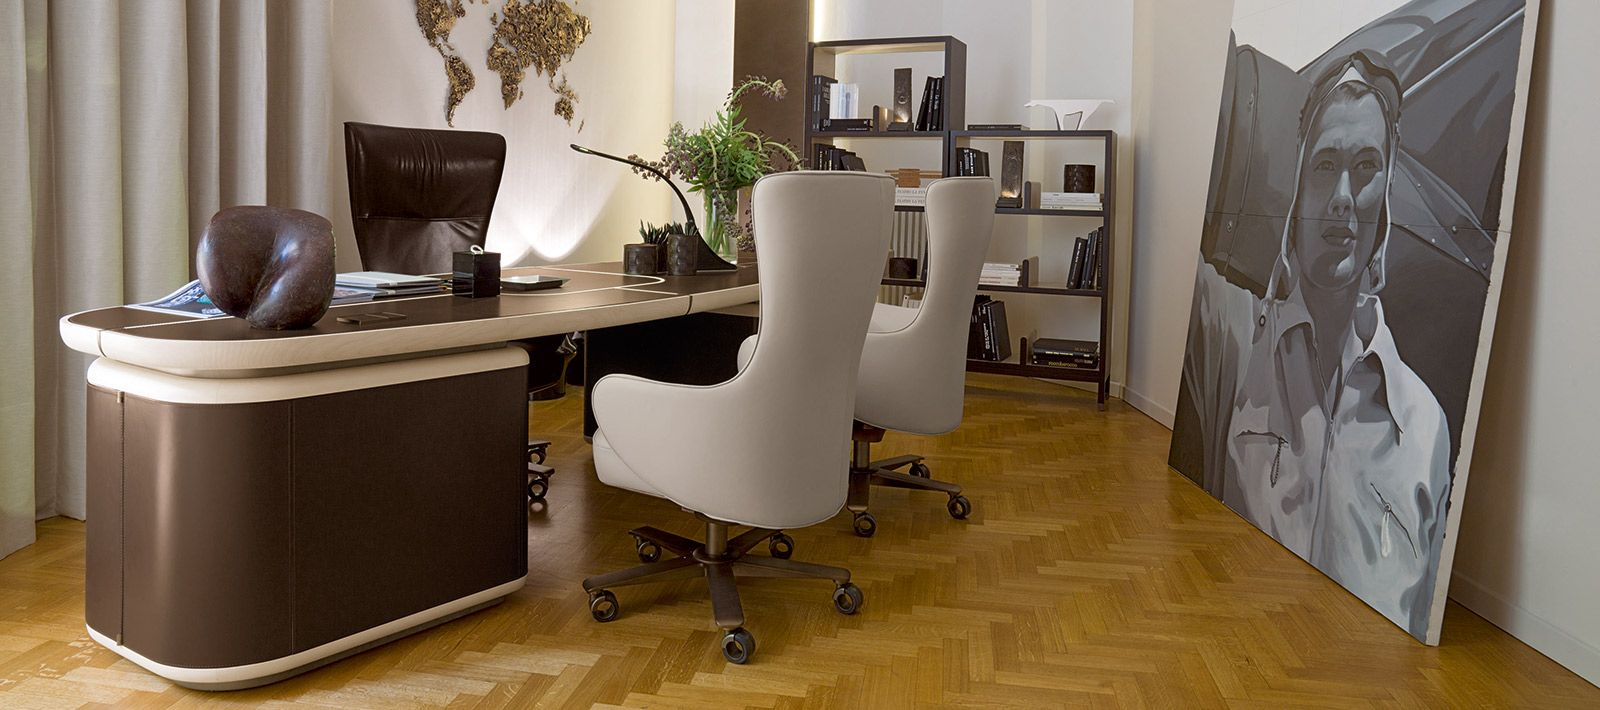 Office Pinterest Plywood, Armchairs and Desks